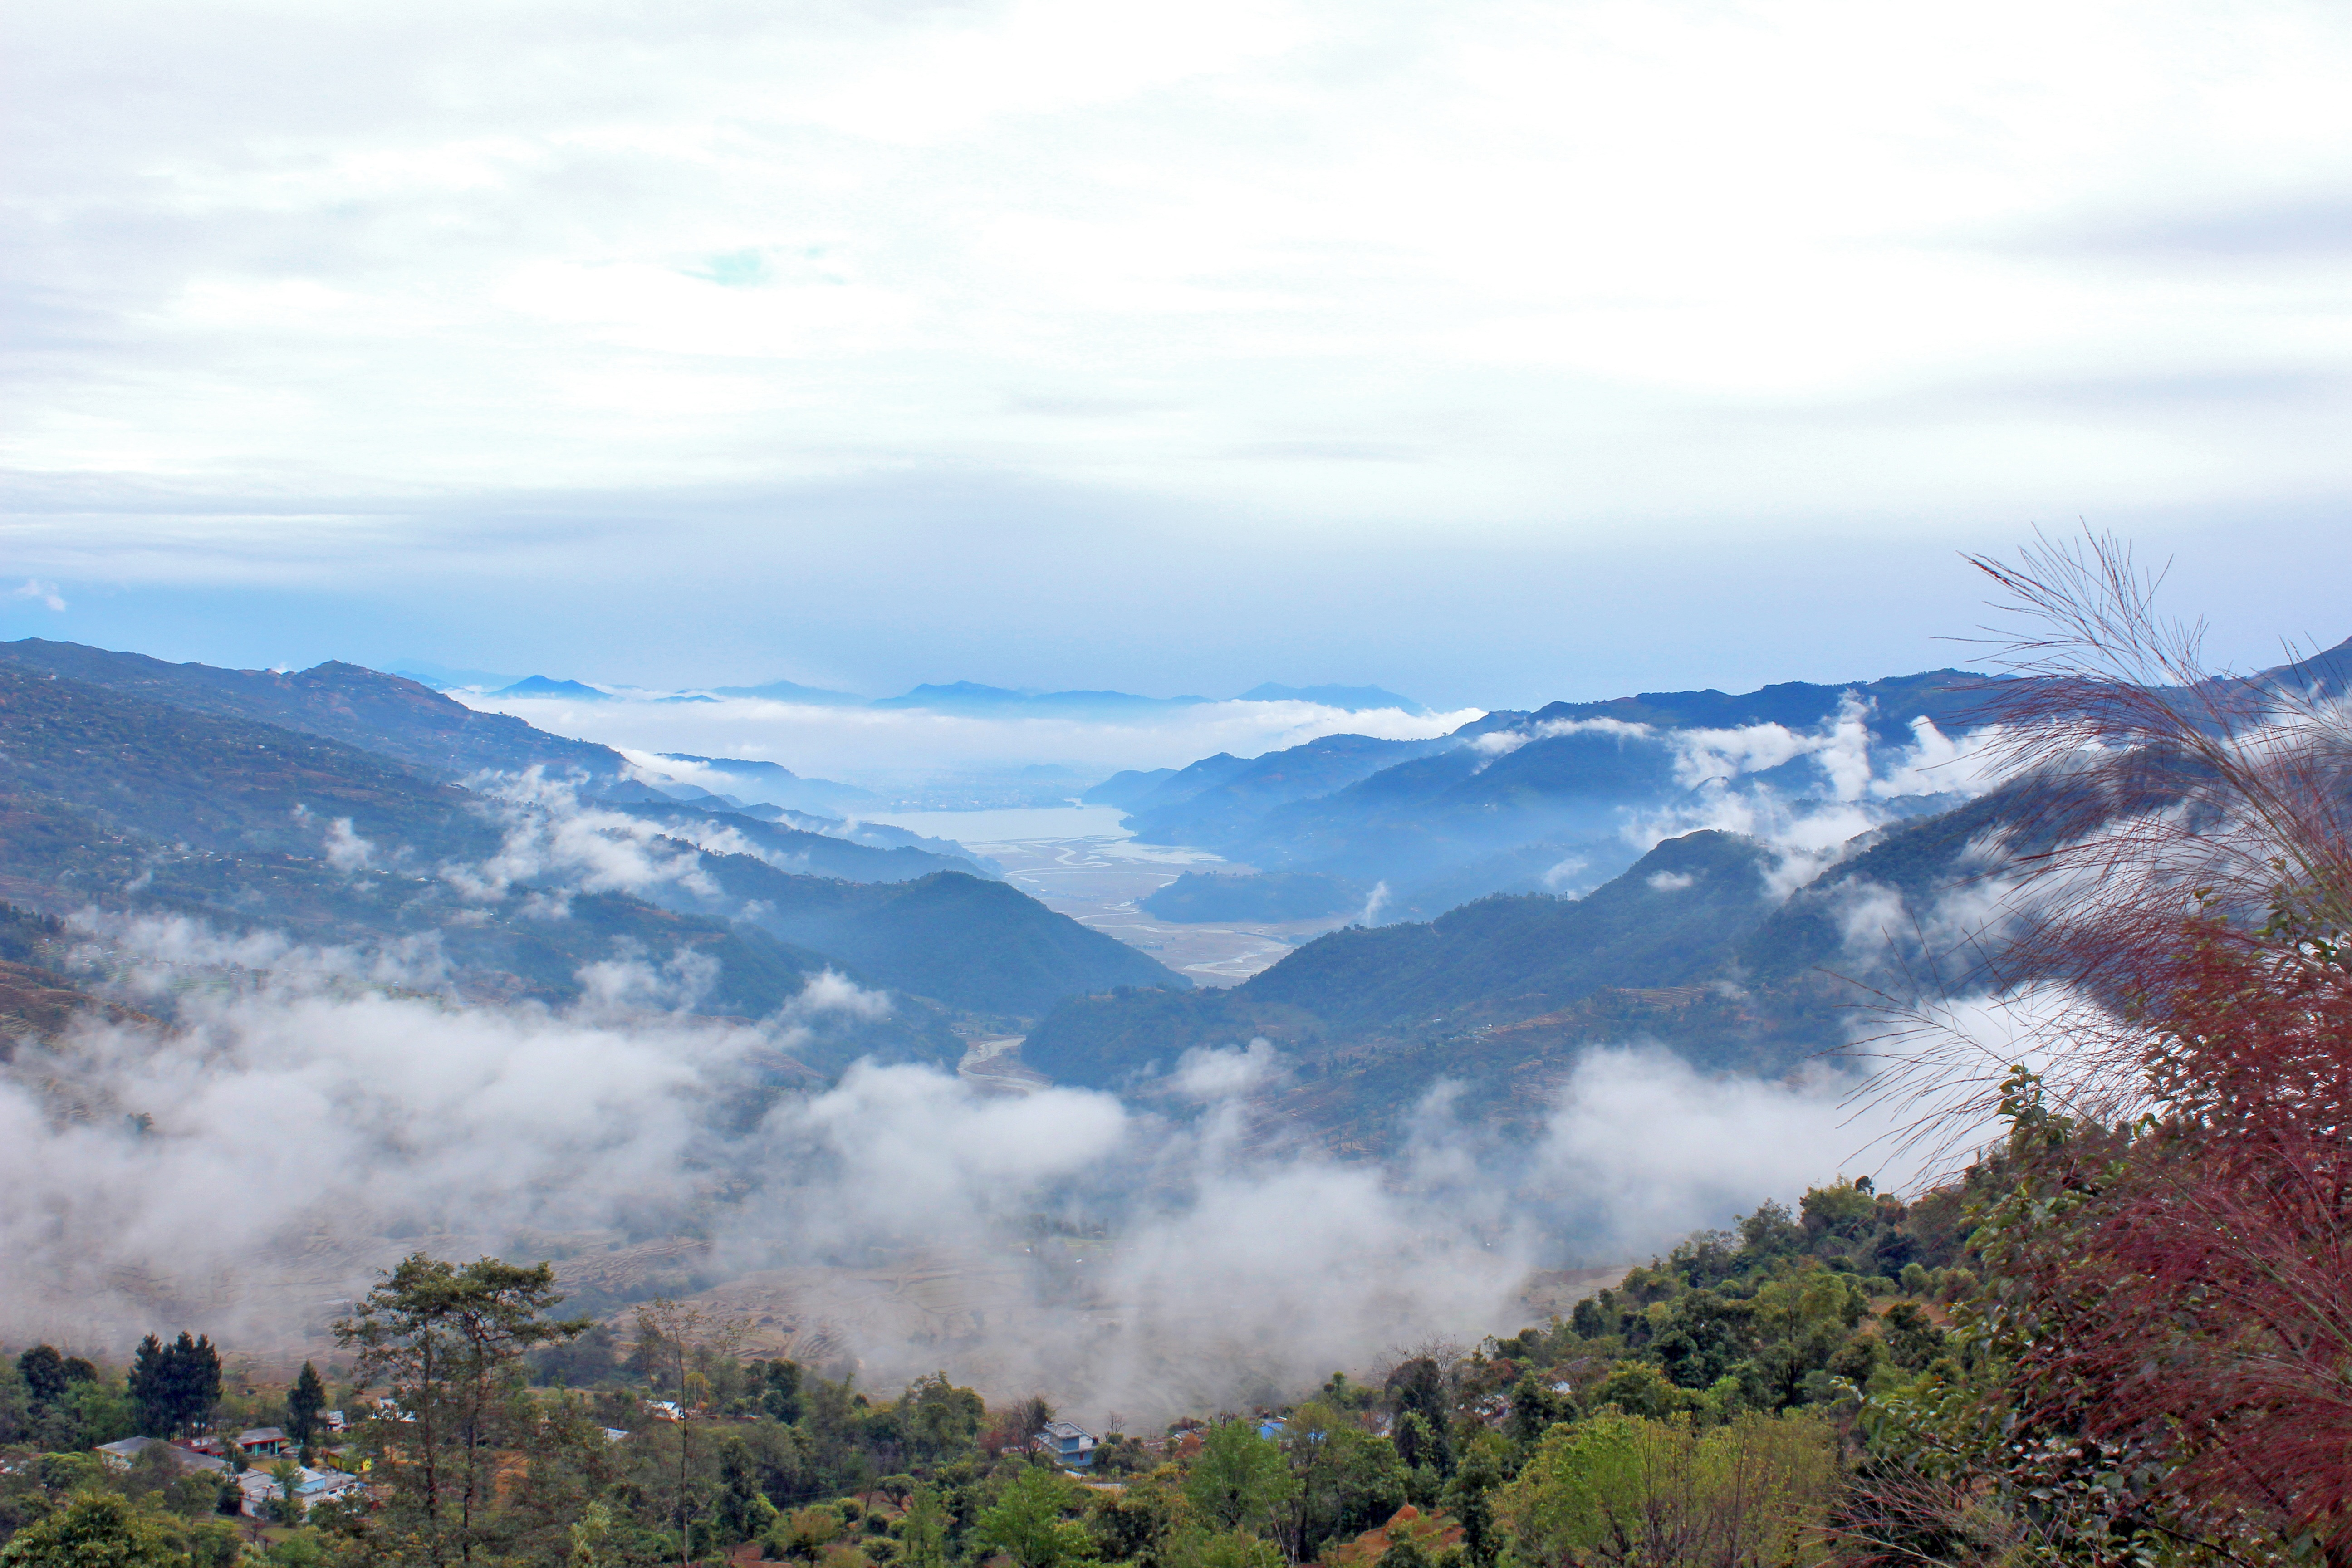 landscape-water-nature-wilderness-mountain-cold-747553-pxhere.com